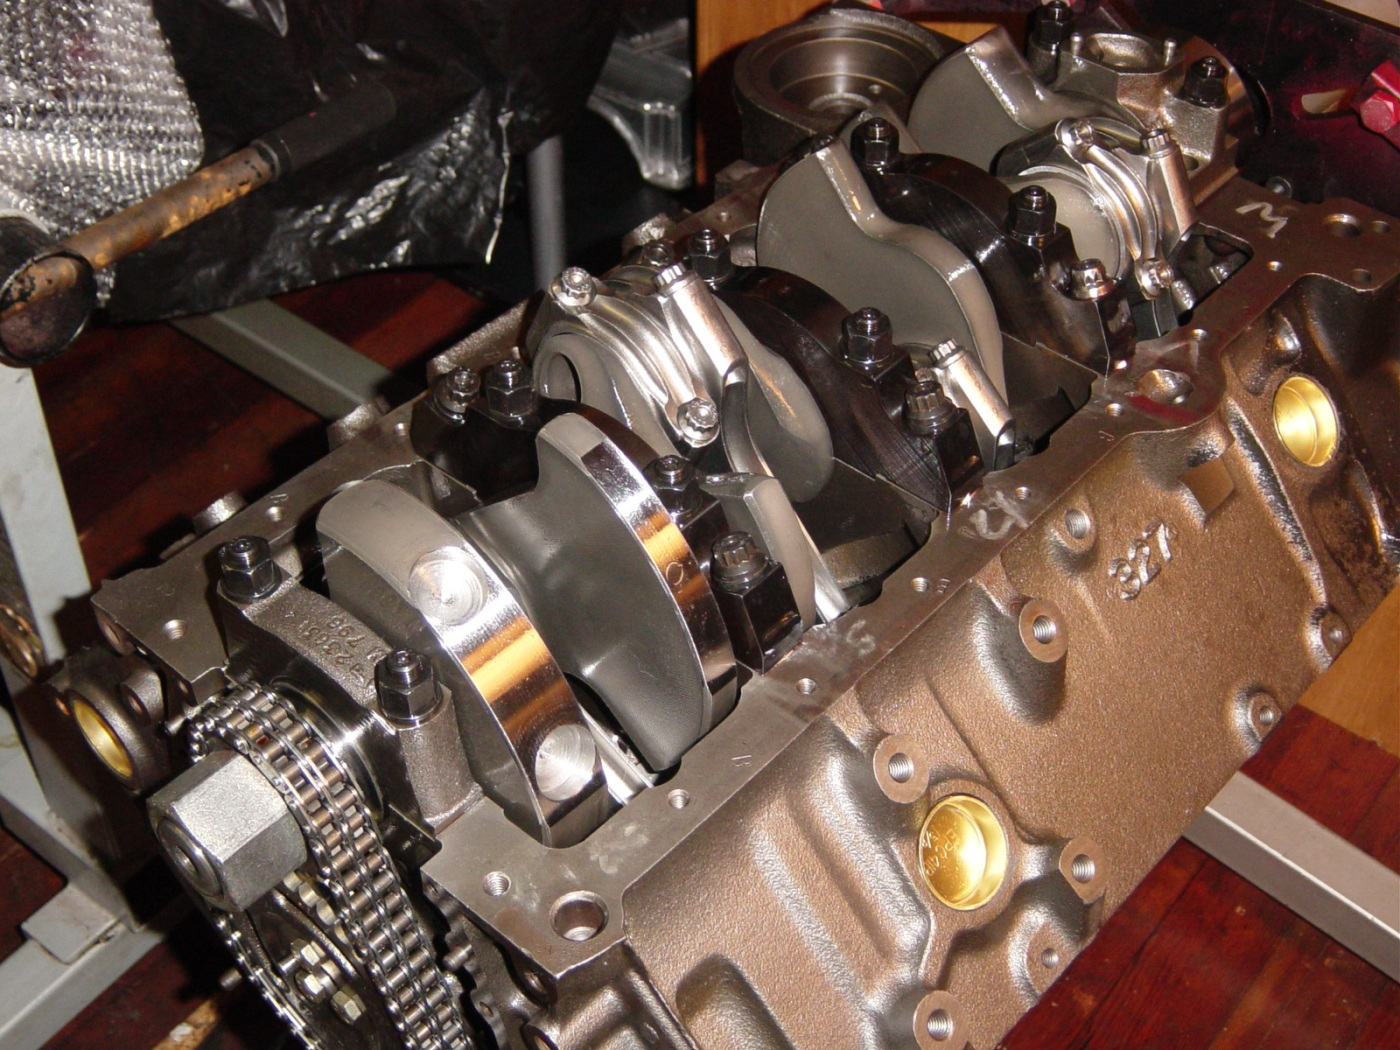 ellwein engines ere 383 20 with custom ross blower pistons. Black Bedroom Furniture Sets. Home Design Ideas